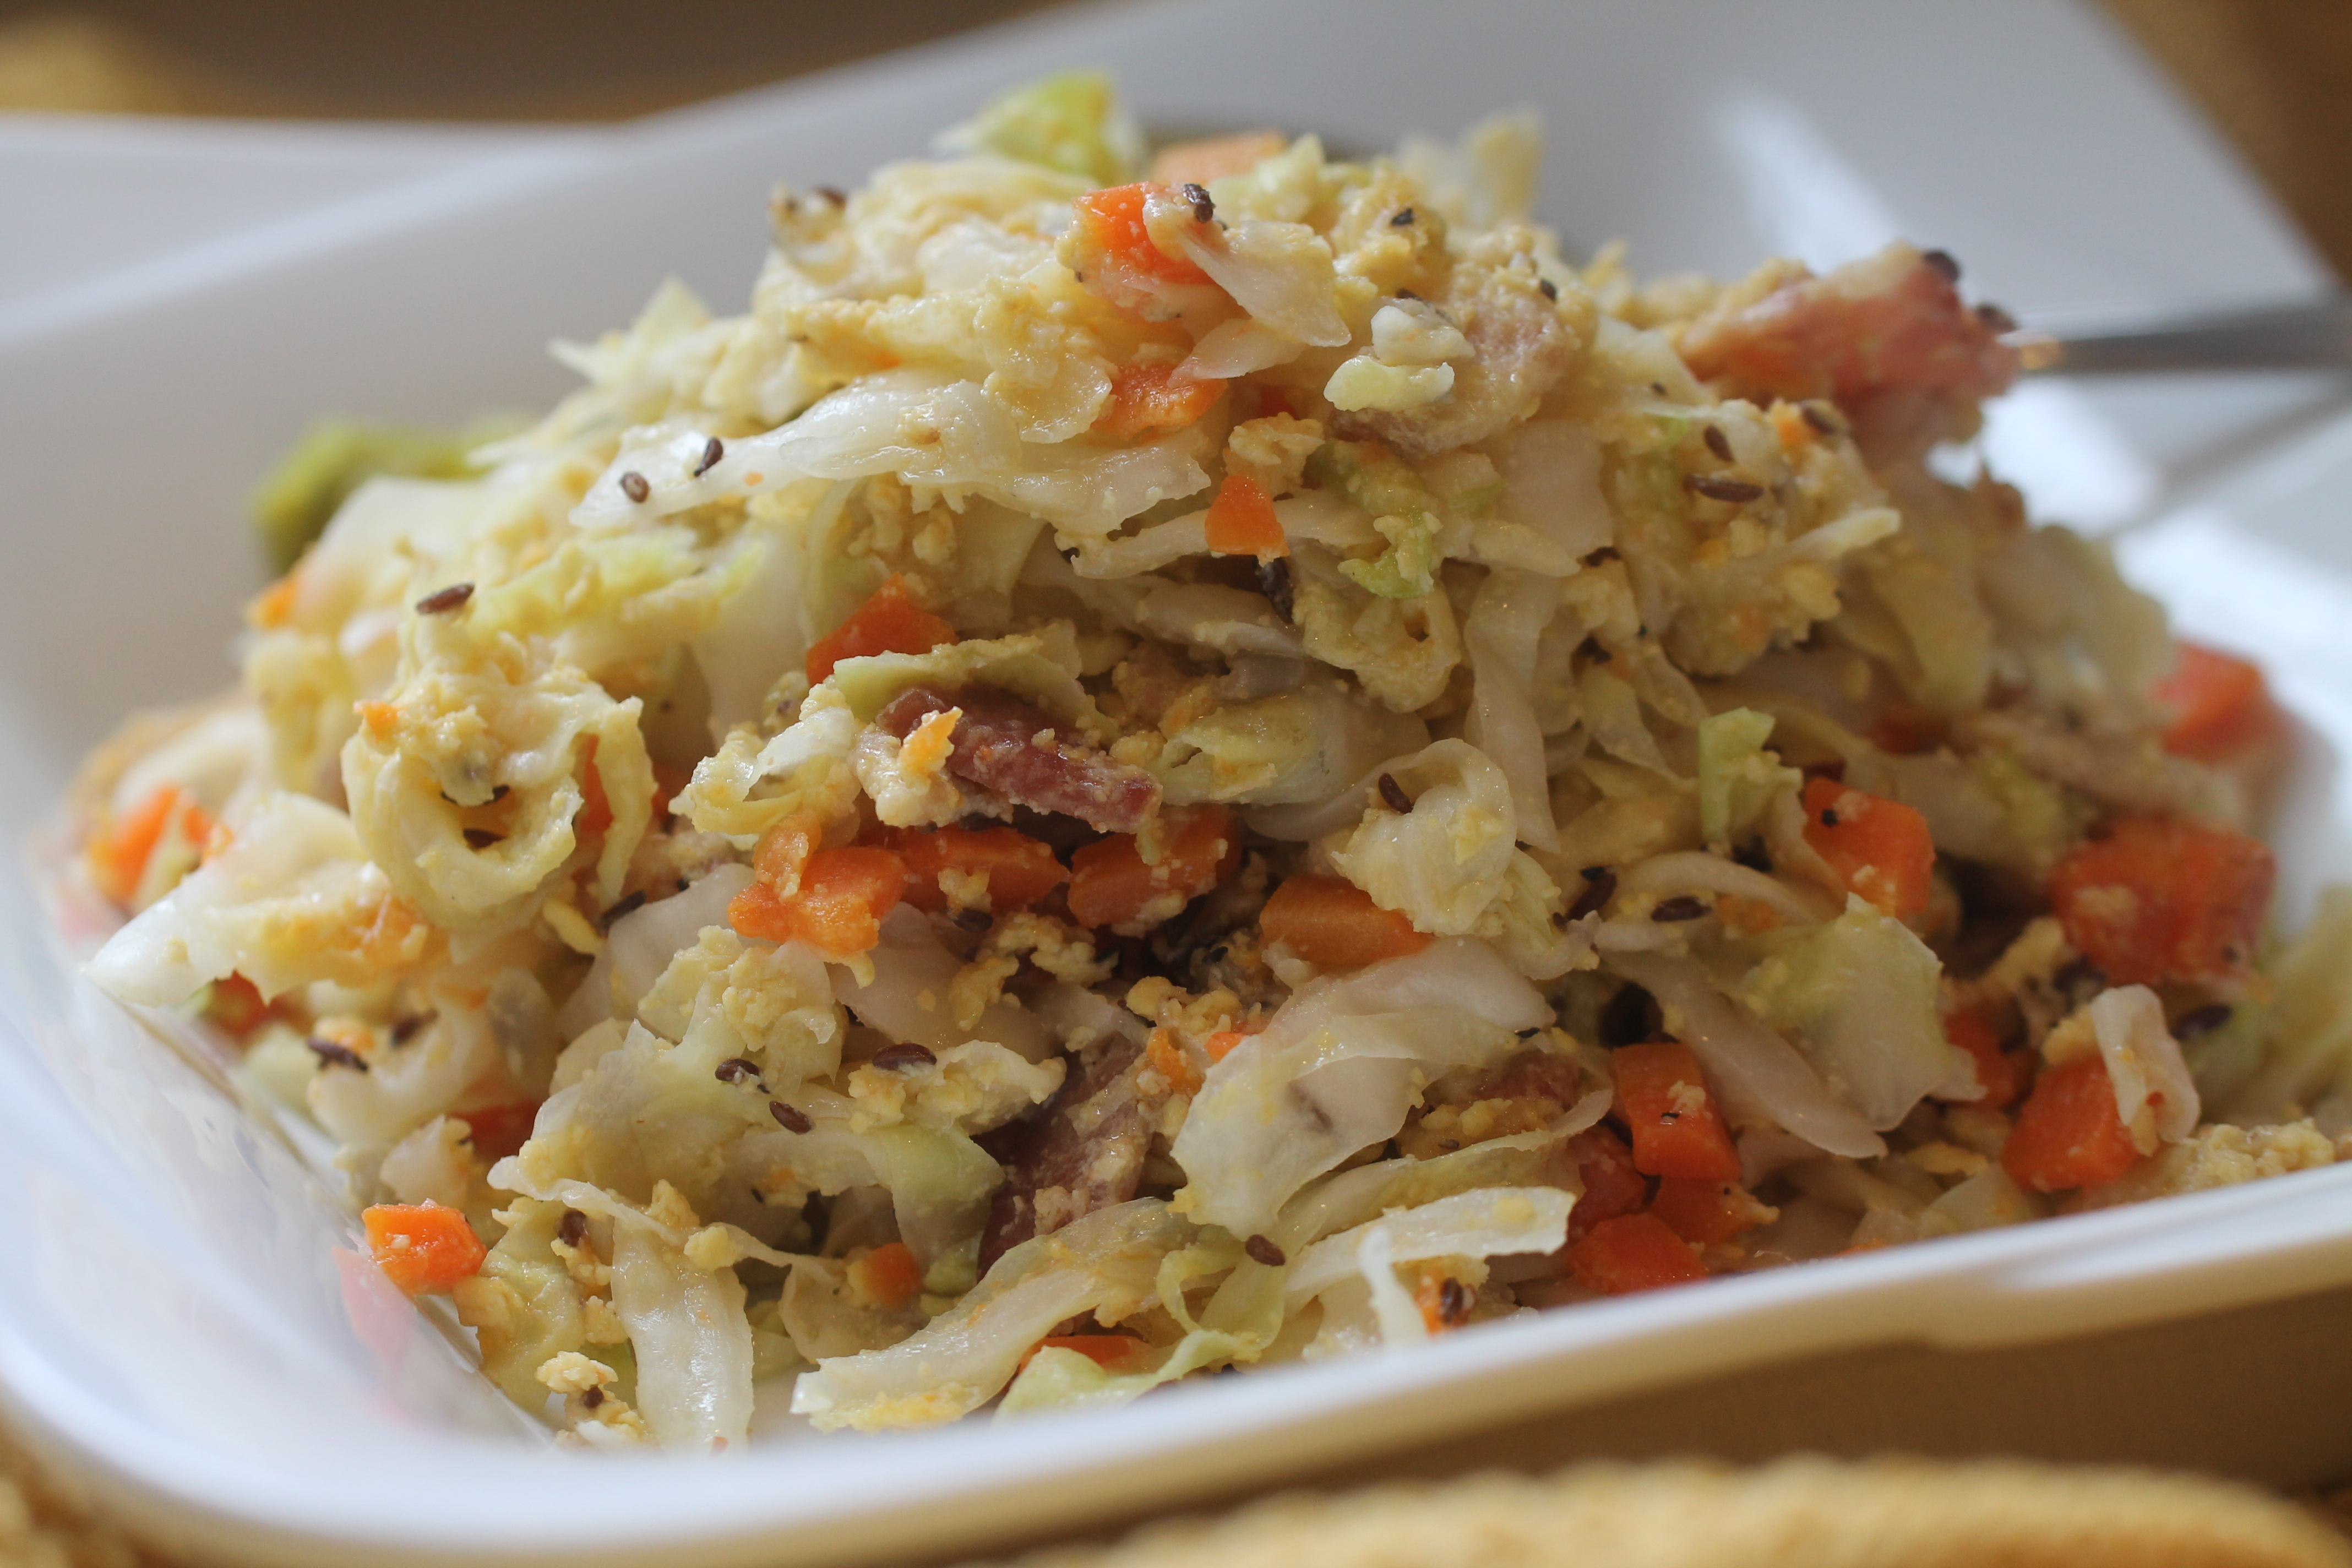 Malta Style, One Pot Cabbage, Caraway Seeds, Bacon, Eggs, Parmesan